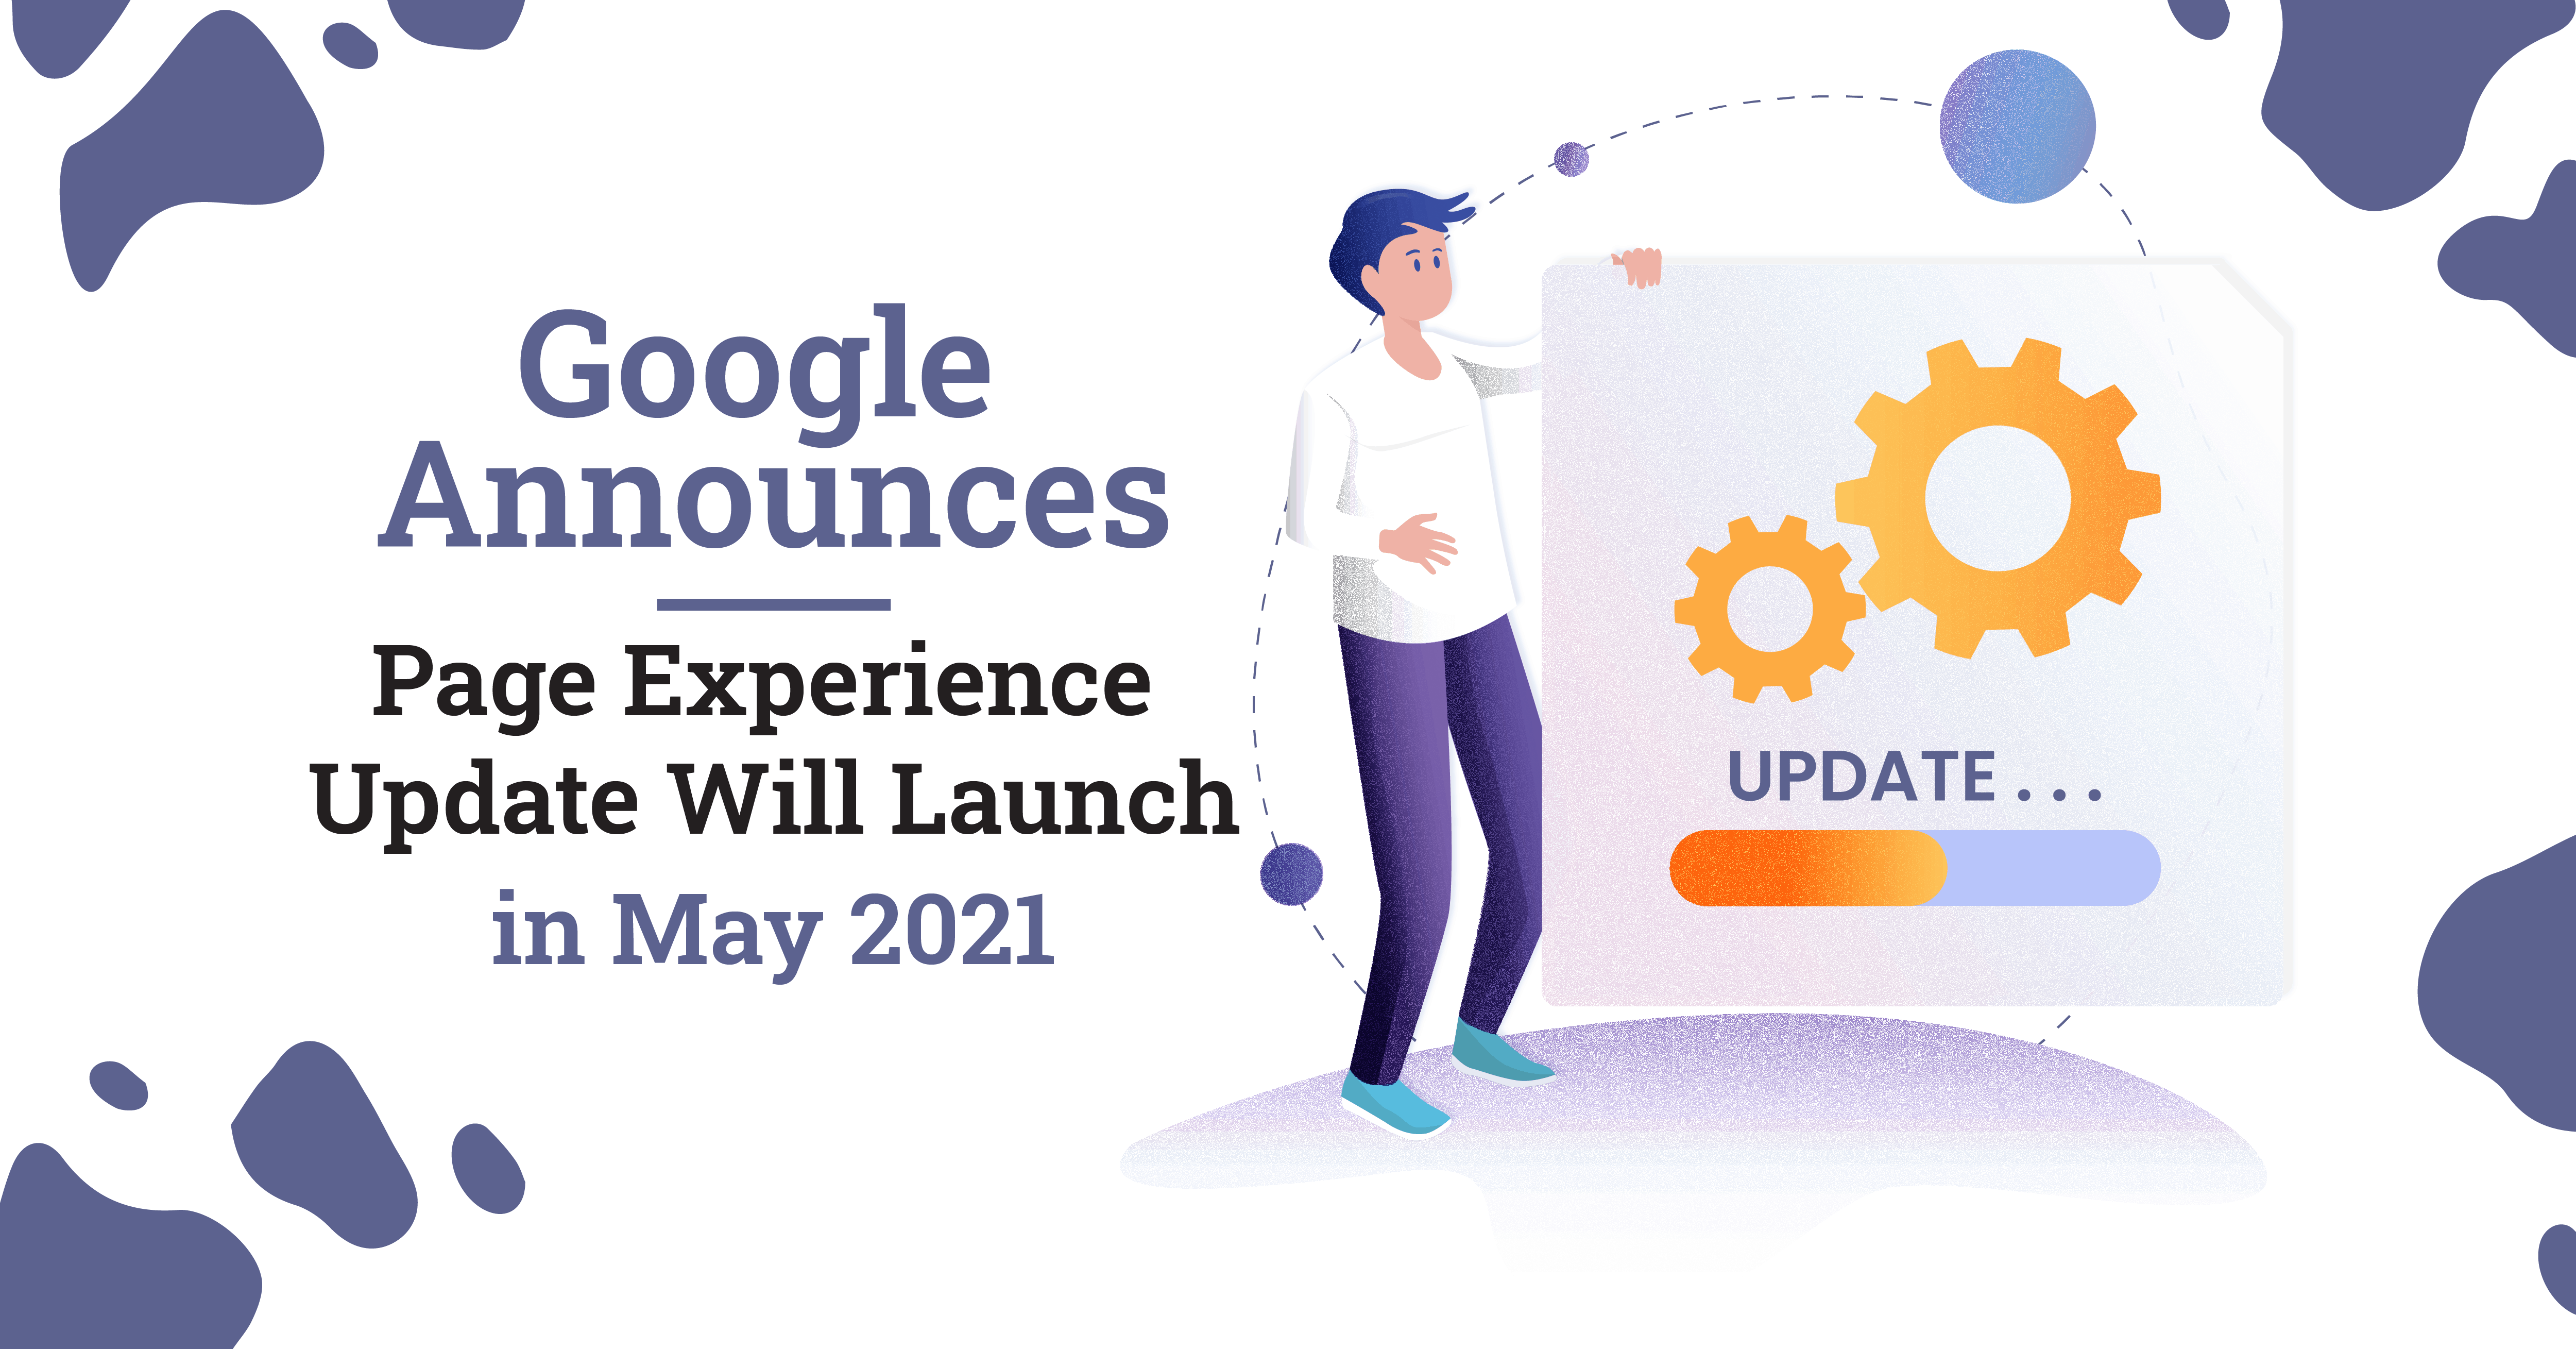 Page Experience Update Will Launch in May 2021